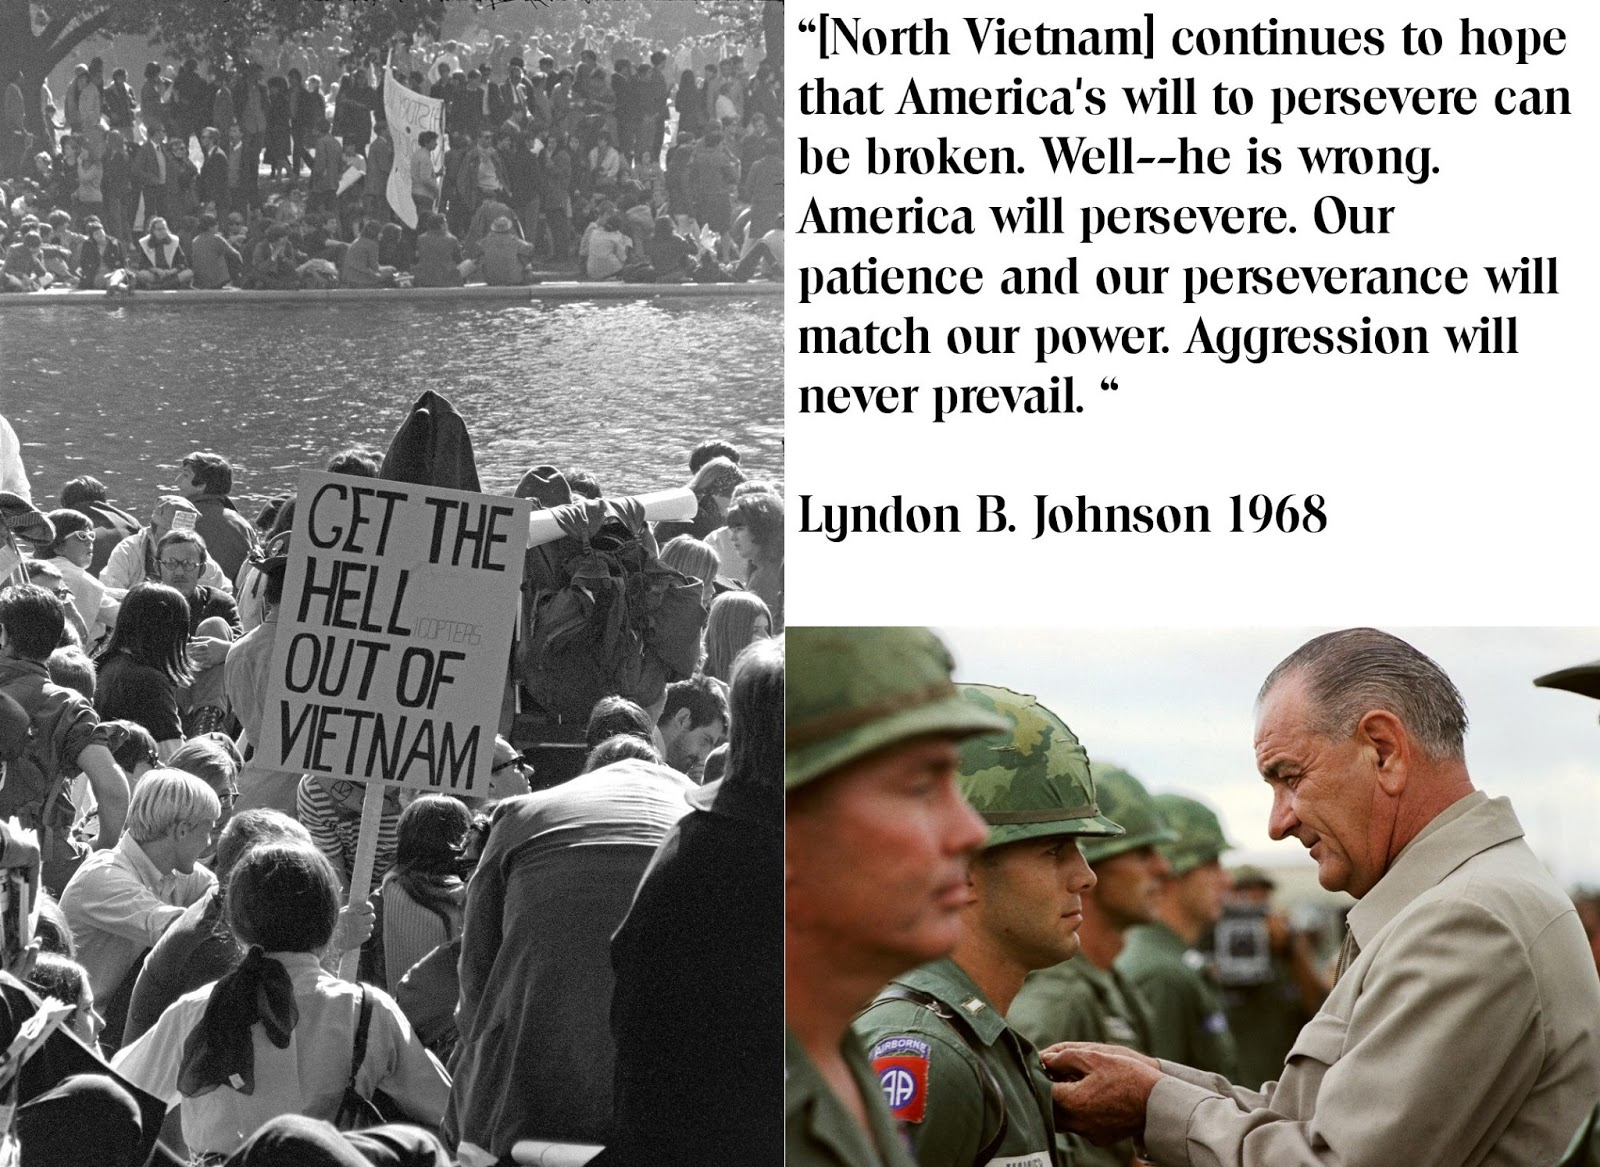 a history of the vietnam war and american president lyndon baines johnson New president lyndon b johnson inherited a difficult situation in vietnam, as the south vietnamese government was in shambles and the viet cong was making large gains in rural areas of the south although johnson billed himself as a tough anti-communist, he pledged to honor kennedy's limited troop commitments in vietnam.